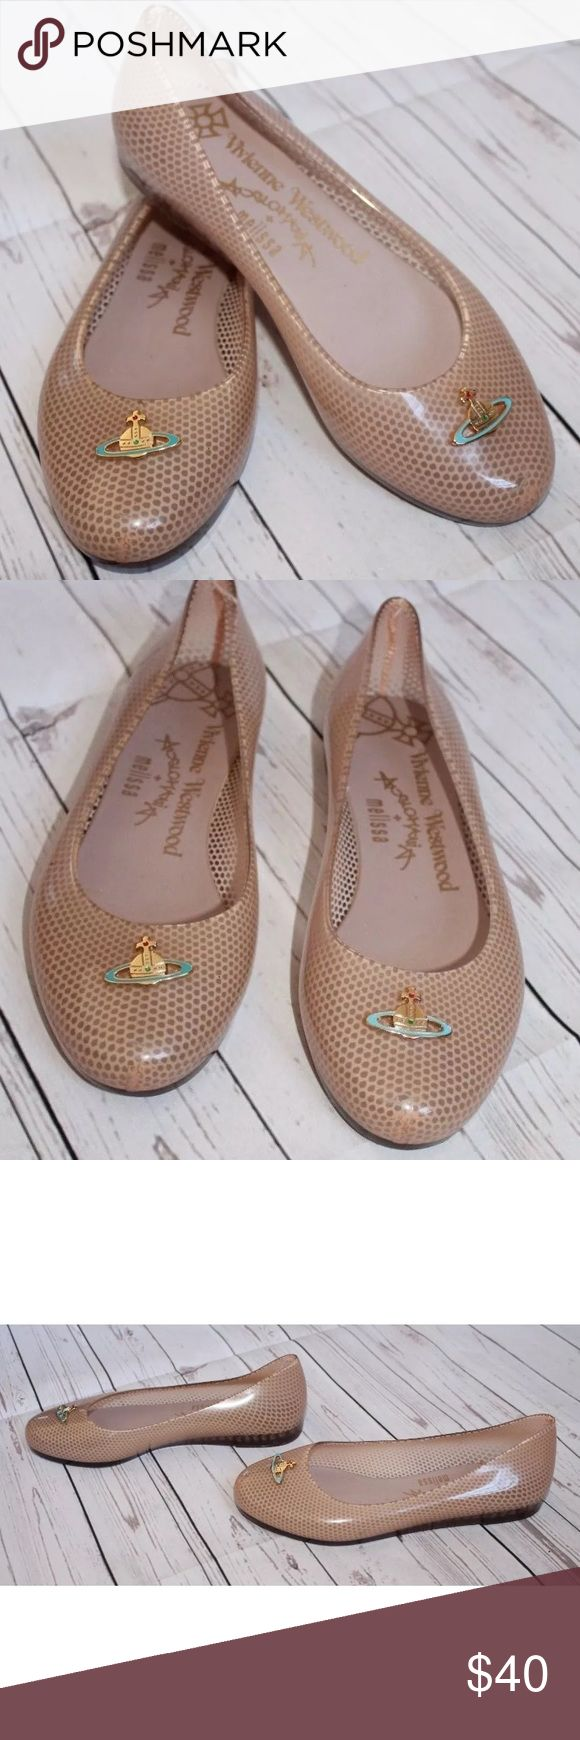 Vivienne Westwood + Melissa + Anglomania Size 5 BRAND: Vivienne Westwood Melissa Shoes CONDITION: Perfect Pre- Owned Like New ITEM STYLE: Flates MATERIAL: Plastic COLOR: Beige SIZE: 5 M Melissa Shoes Flats & Loafers